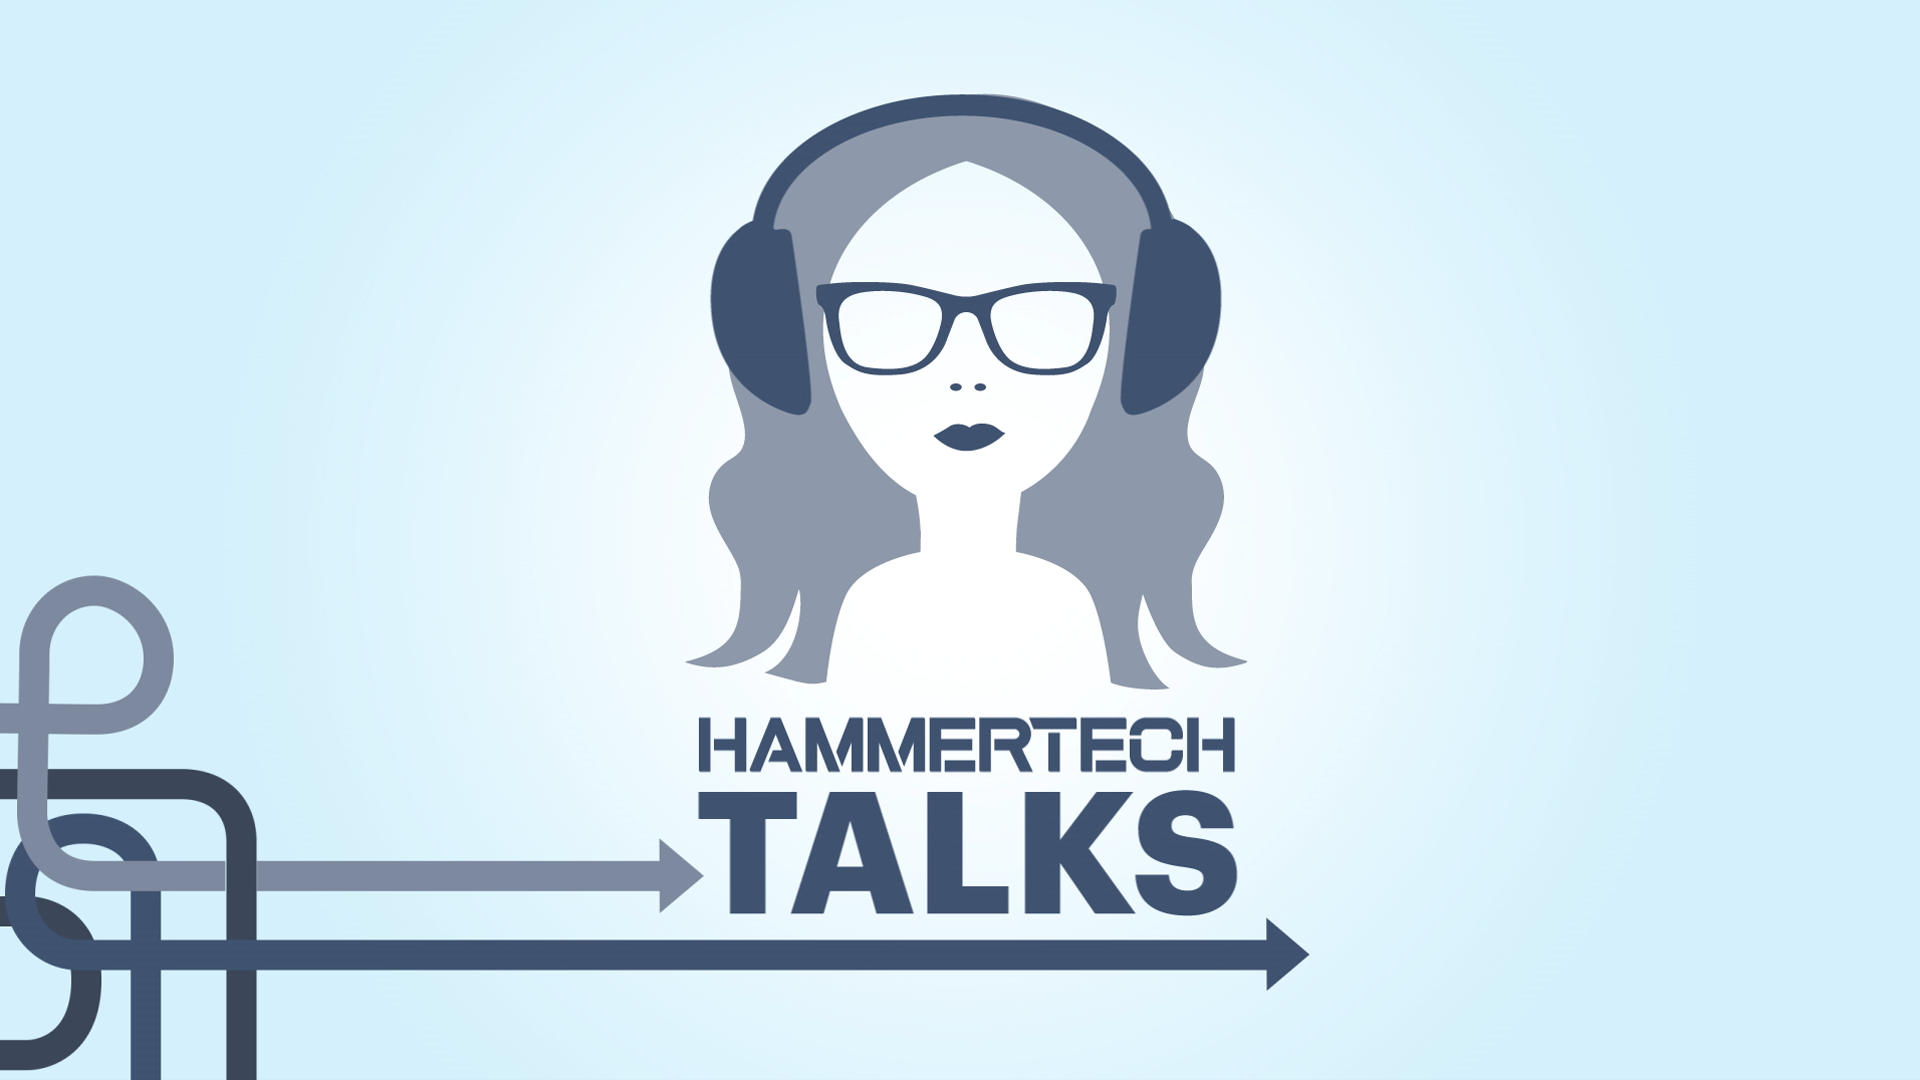 HammerTech Talks with Dona File, Corporate Safety Director, LF Driscoll